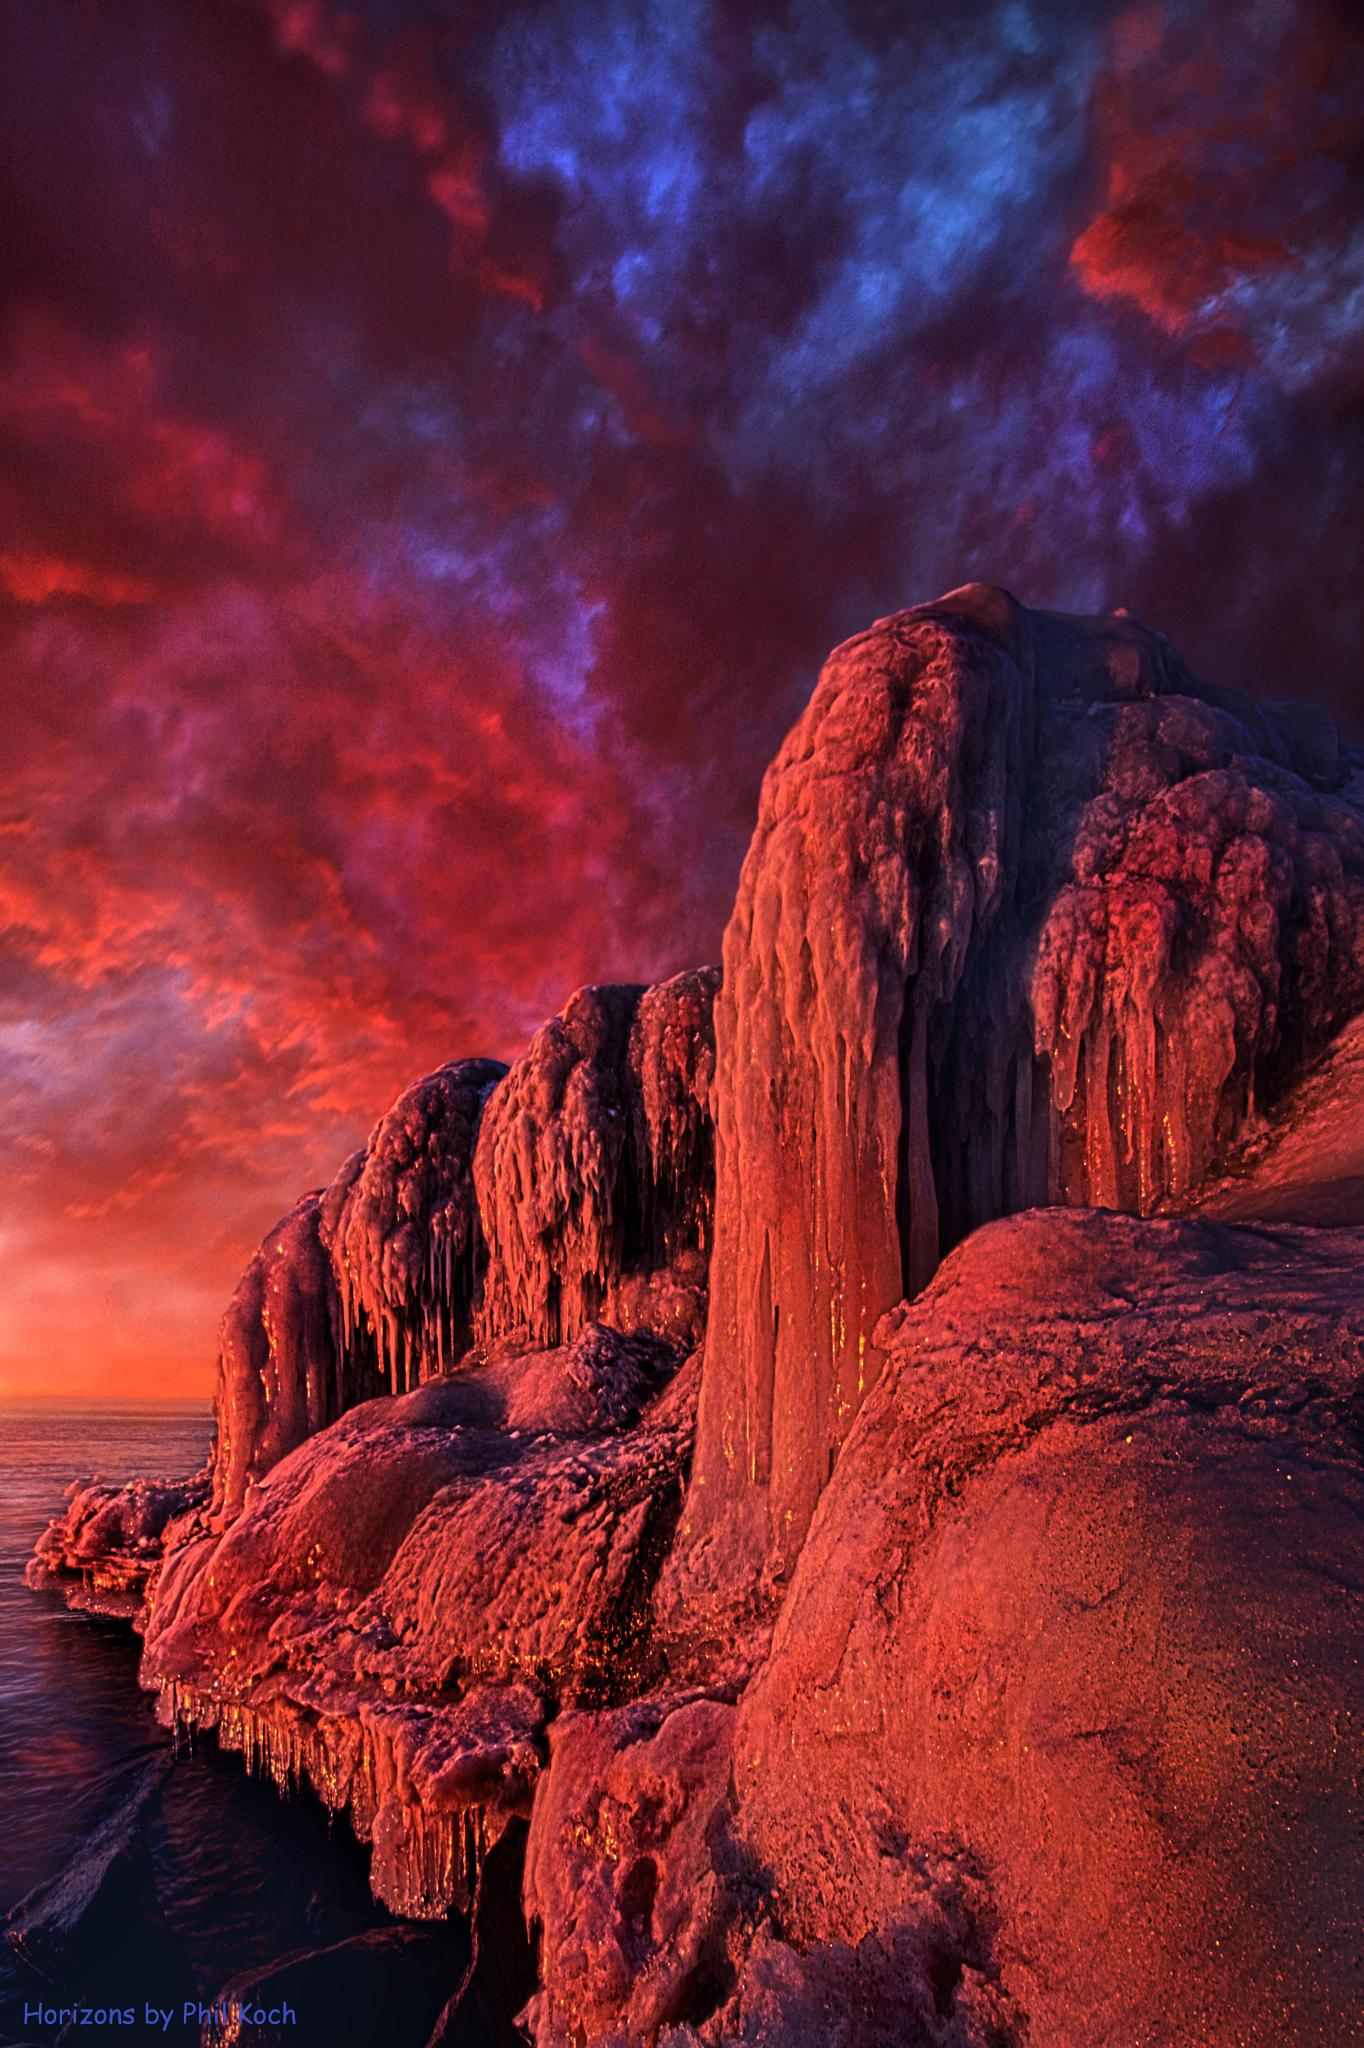 The End of Days by PhilKoch